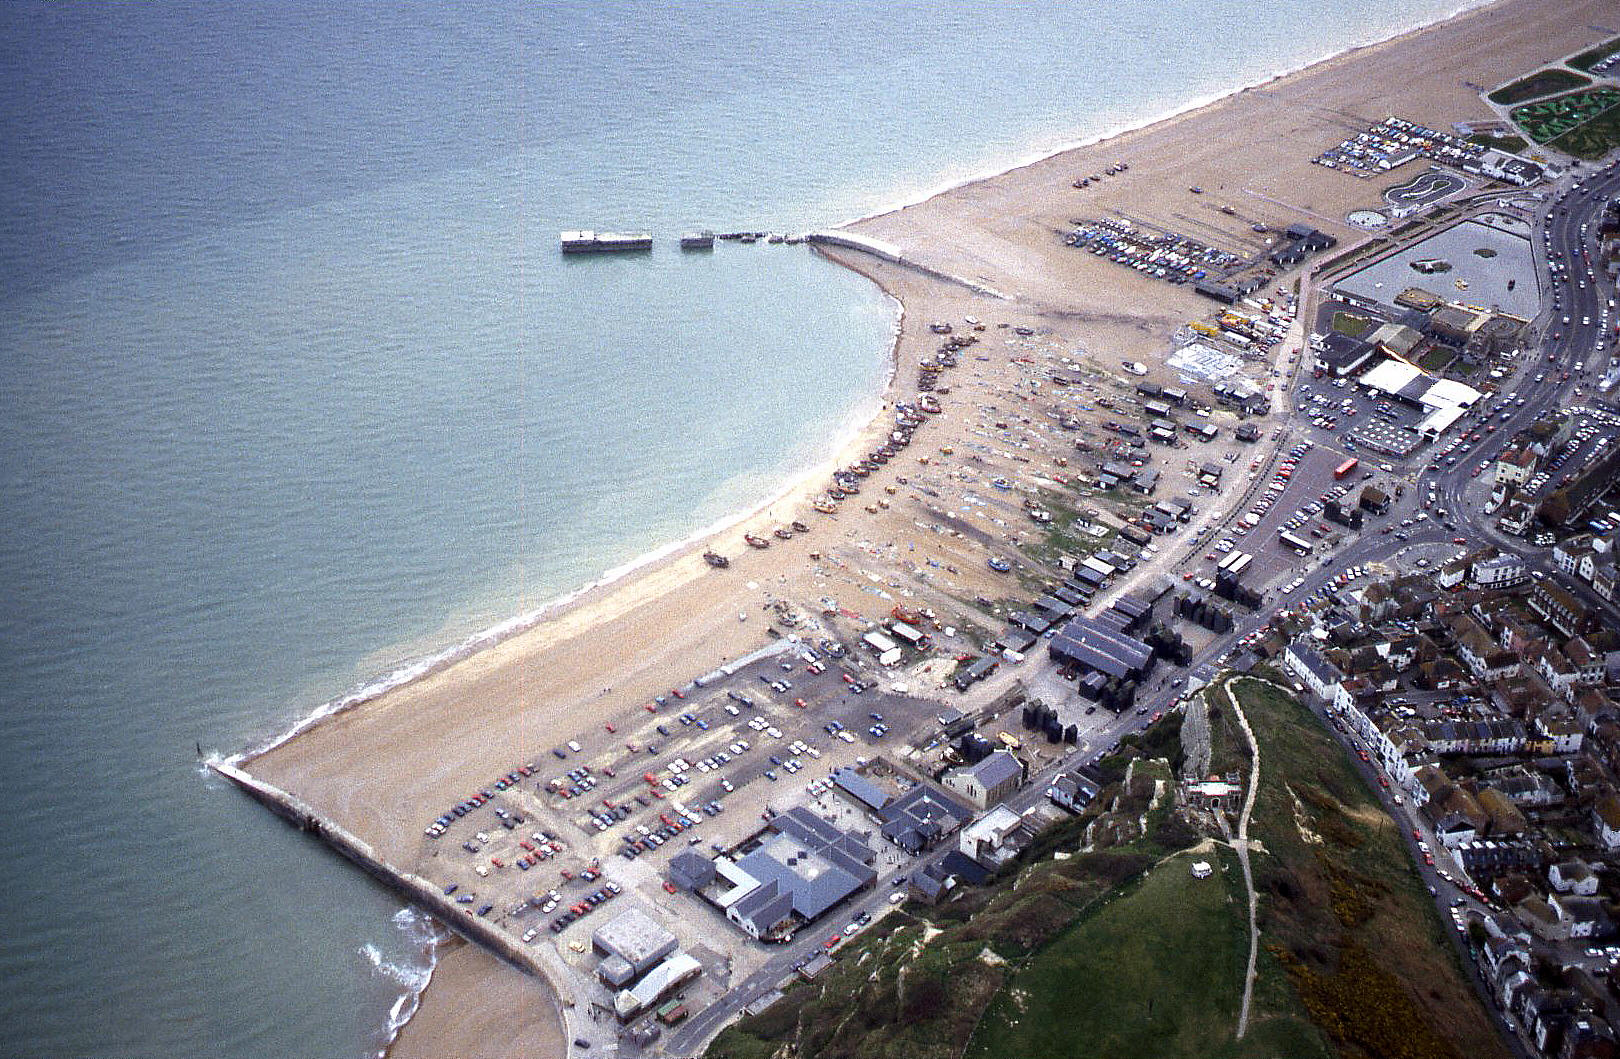 The Stade, Old Hastings, East Sussex - see note 24